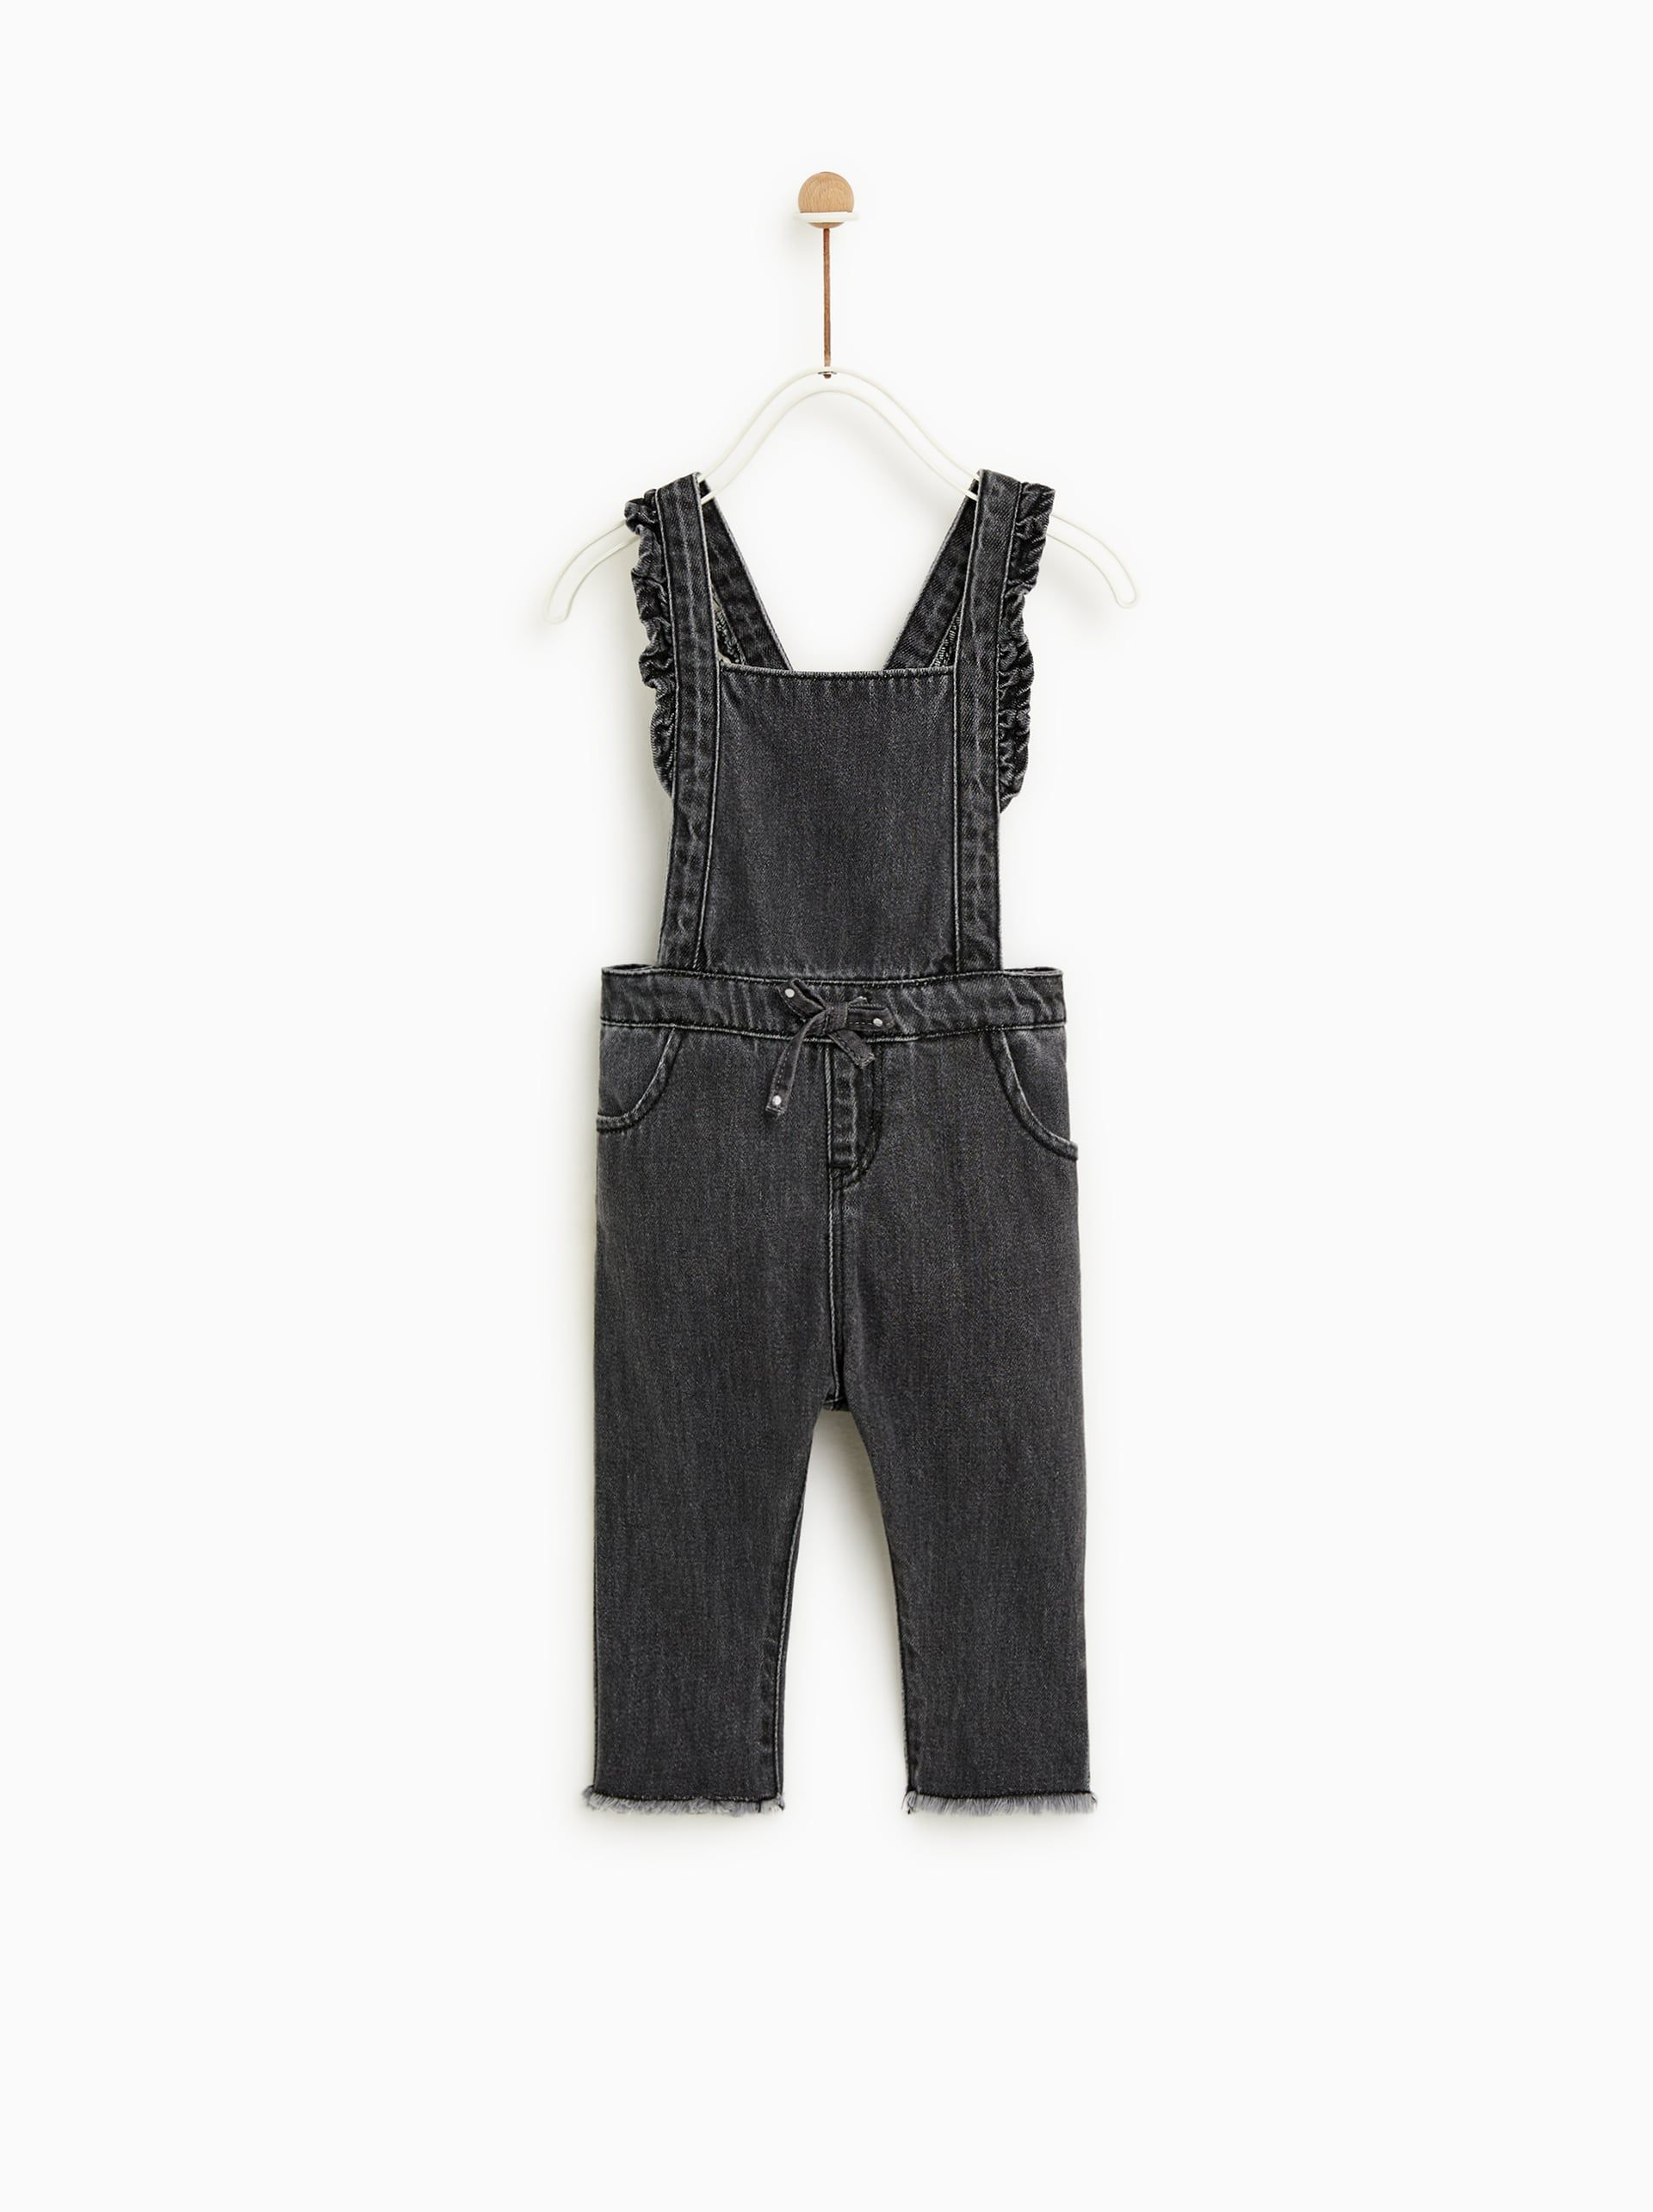 c8a0f2576152 Image 1 of RUFFLED DENIM OVERALLS from Zara 9-12mo.